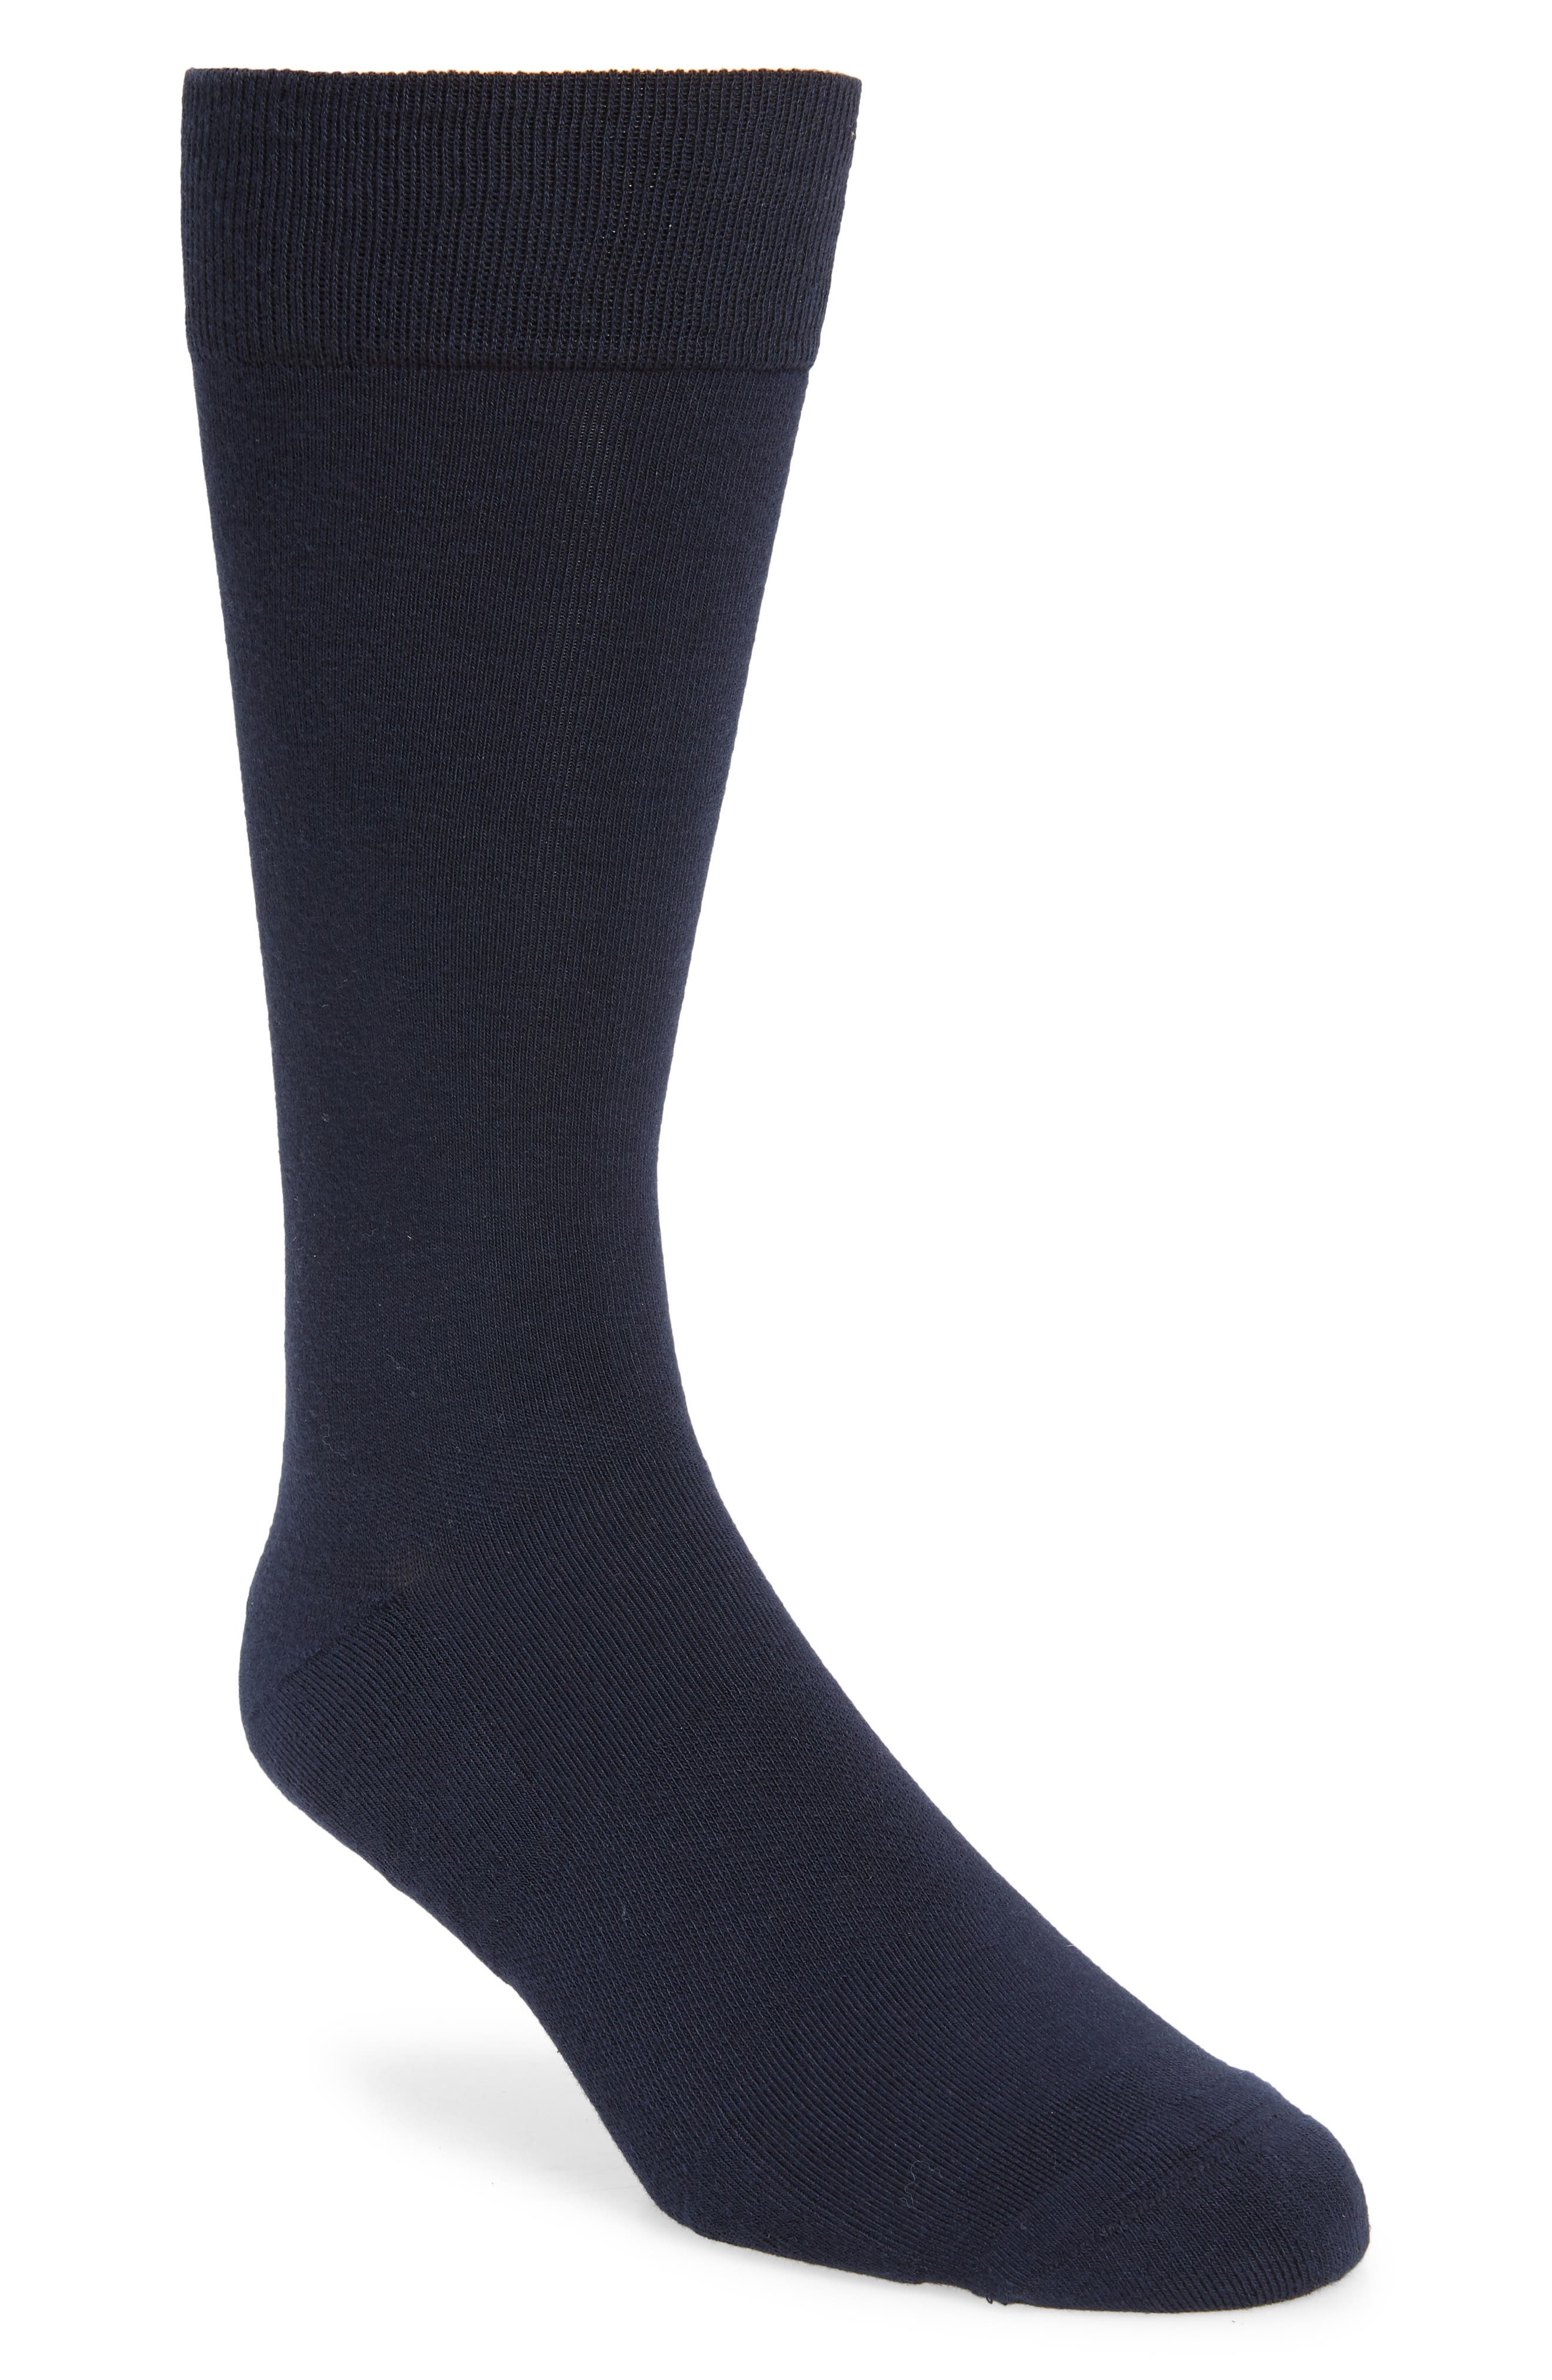 A breathable, moisture-wicking knit brings exceptional day-and-night comfort to tall dress socks styled for versatility in a dark solid. Style Name: Nordstrom Men\\\'s Shop Coolmax Solid Dress Socks. Style Number: 6036653. Available in stores.